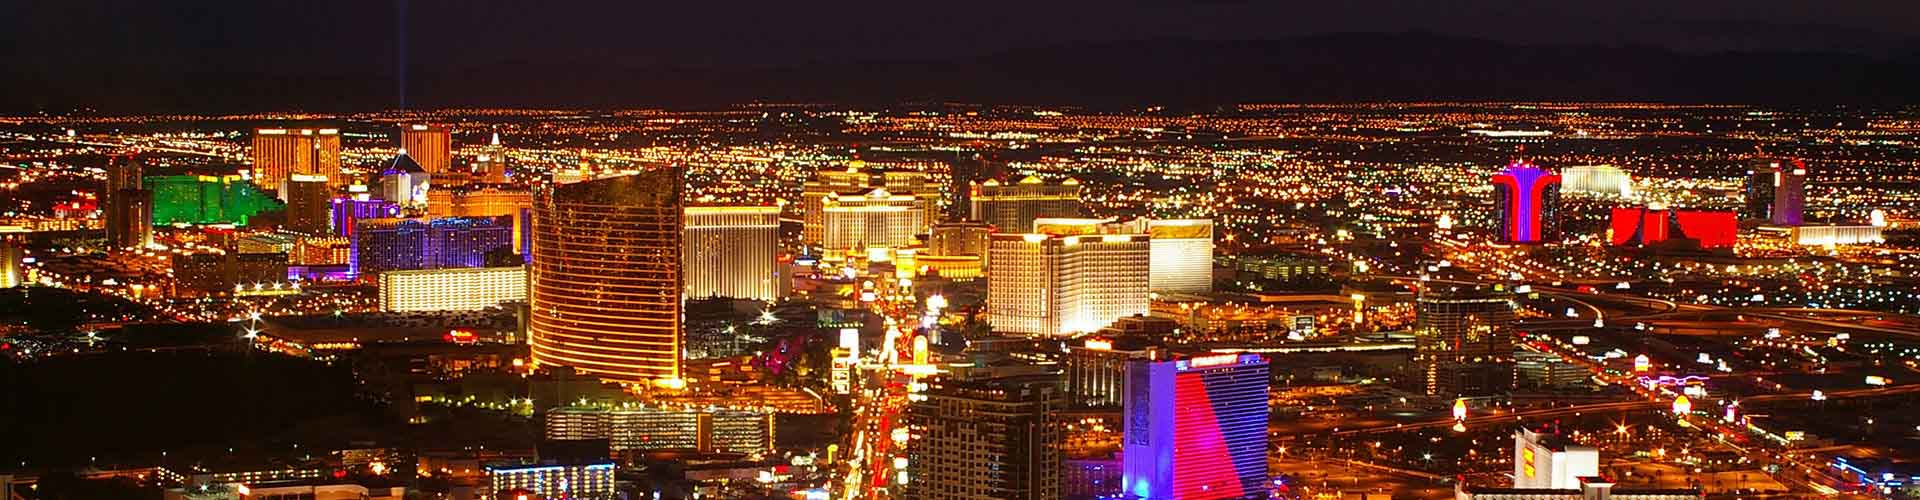 Las Vegas – Hostels in Las Vegas. Maps for Las Vegas, Photos and Reviews for each hostel in Las Vegas.